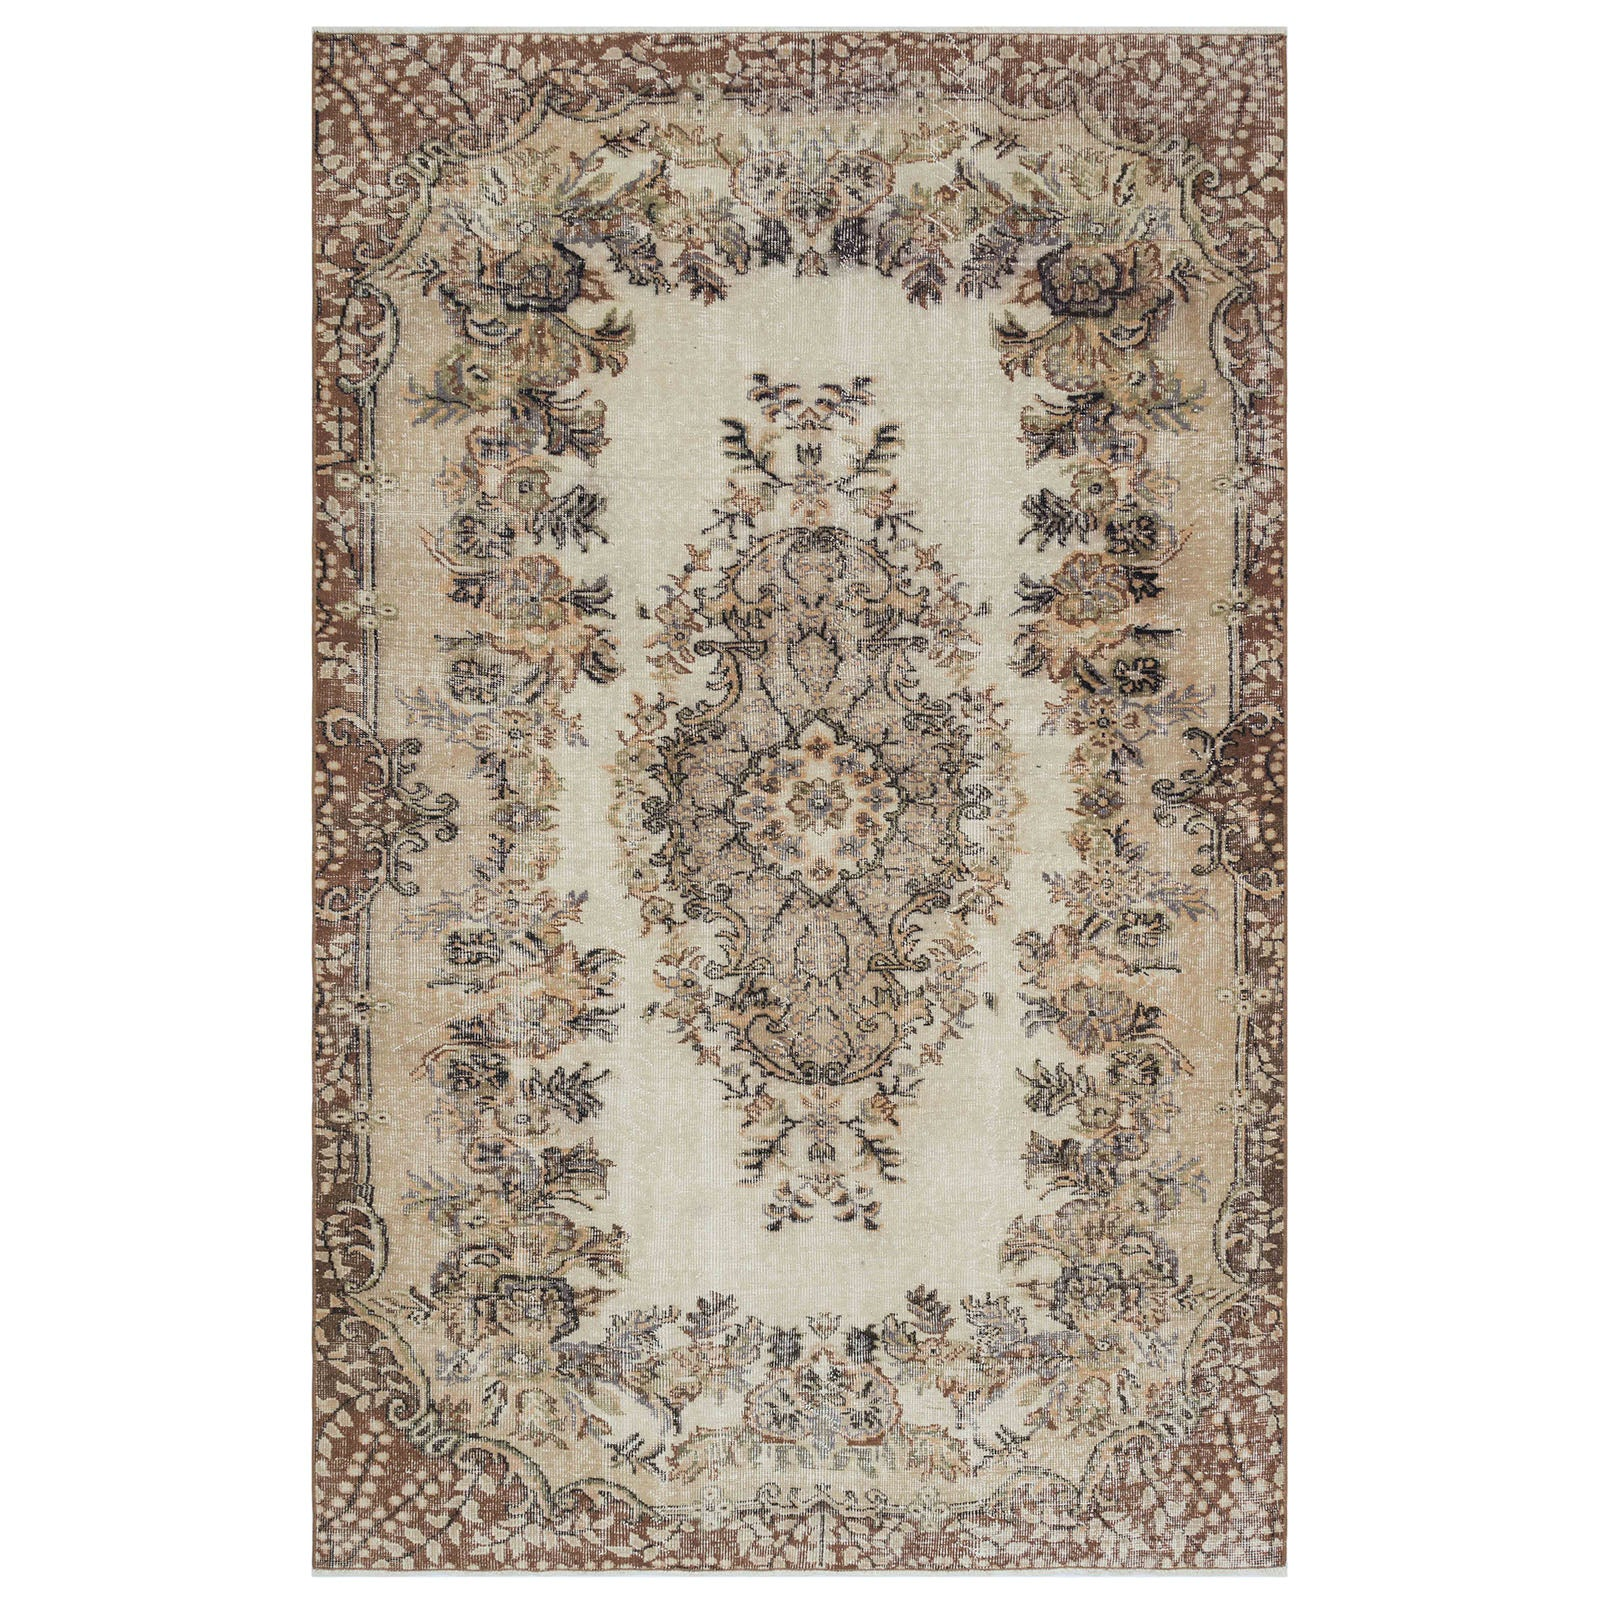 Hali 165X256 CM Bursa Handmade over dyed rug 1777